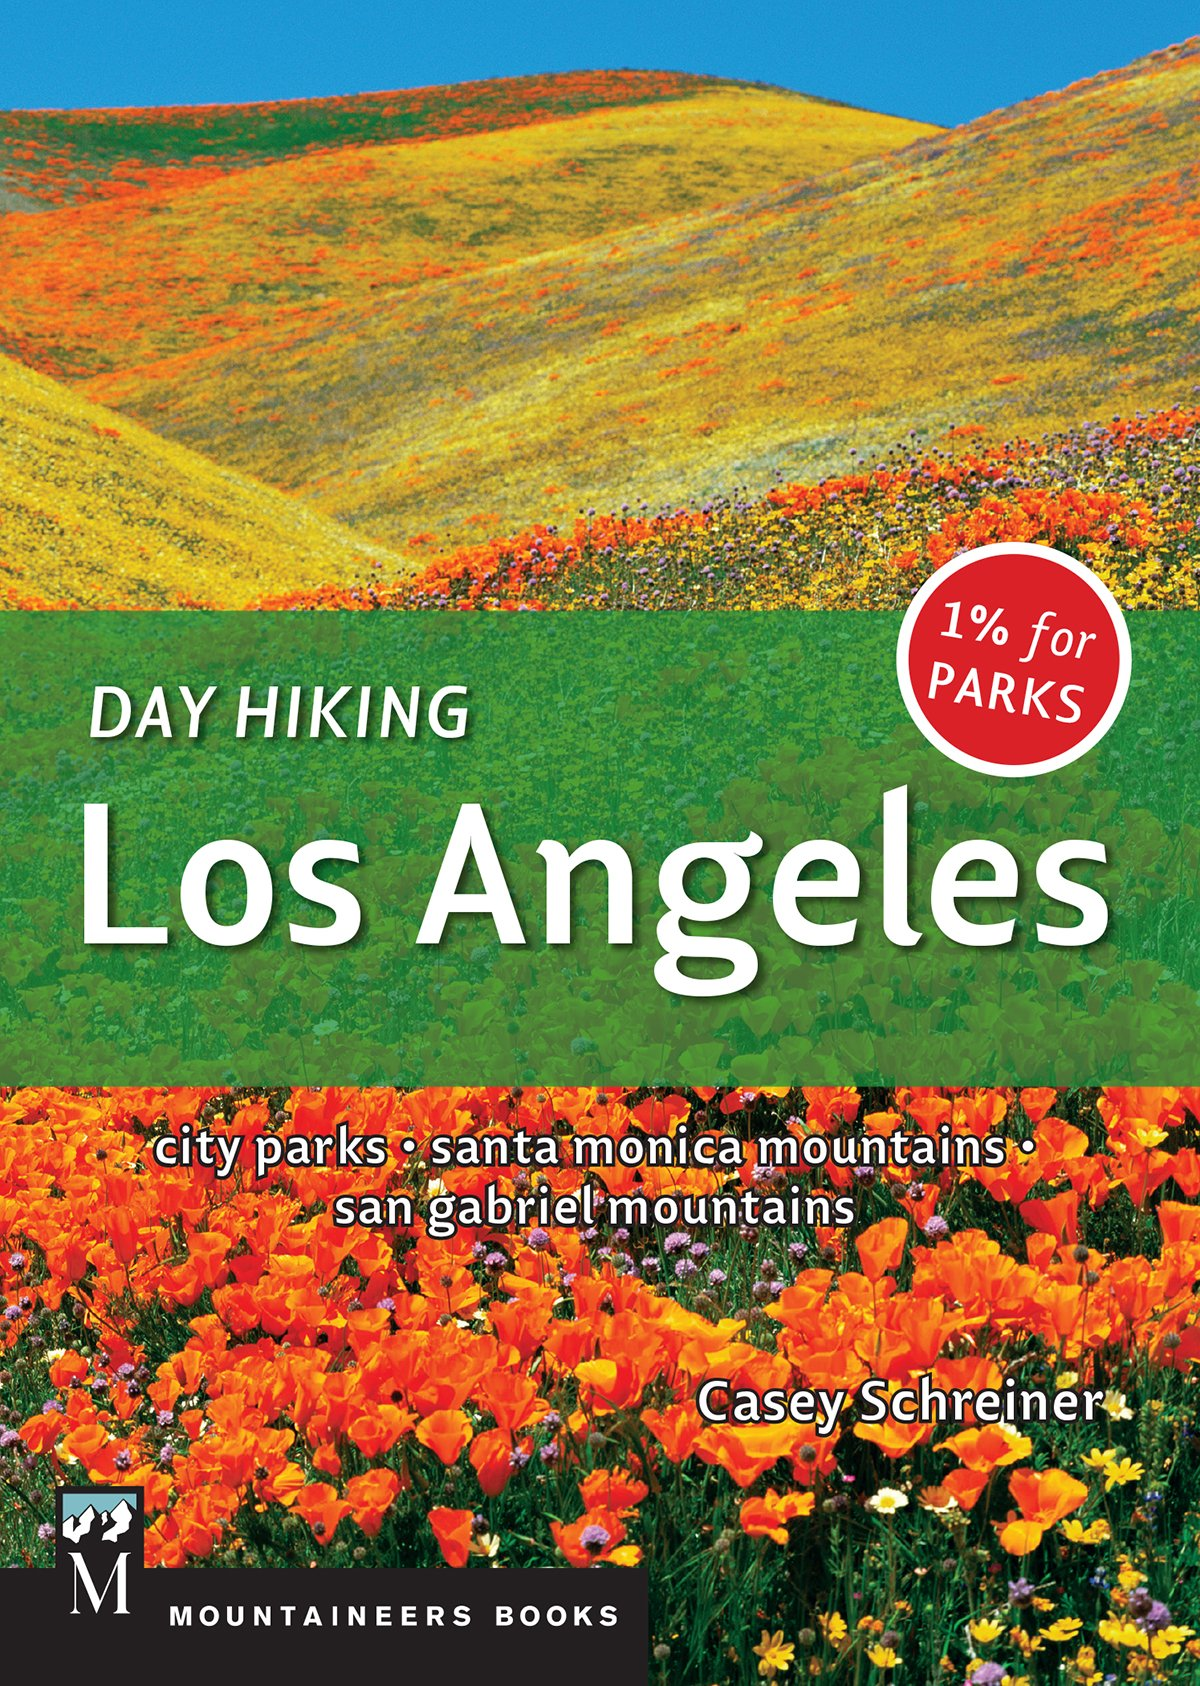 Day Hiking Los Angeles: City Parks, Santa Monica Mountains, San Gabriel Mountains